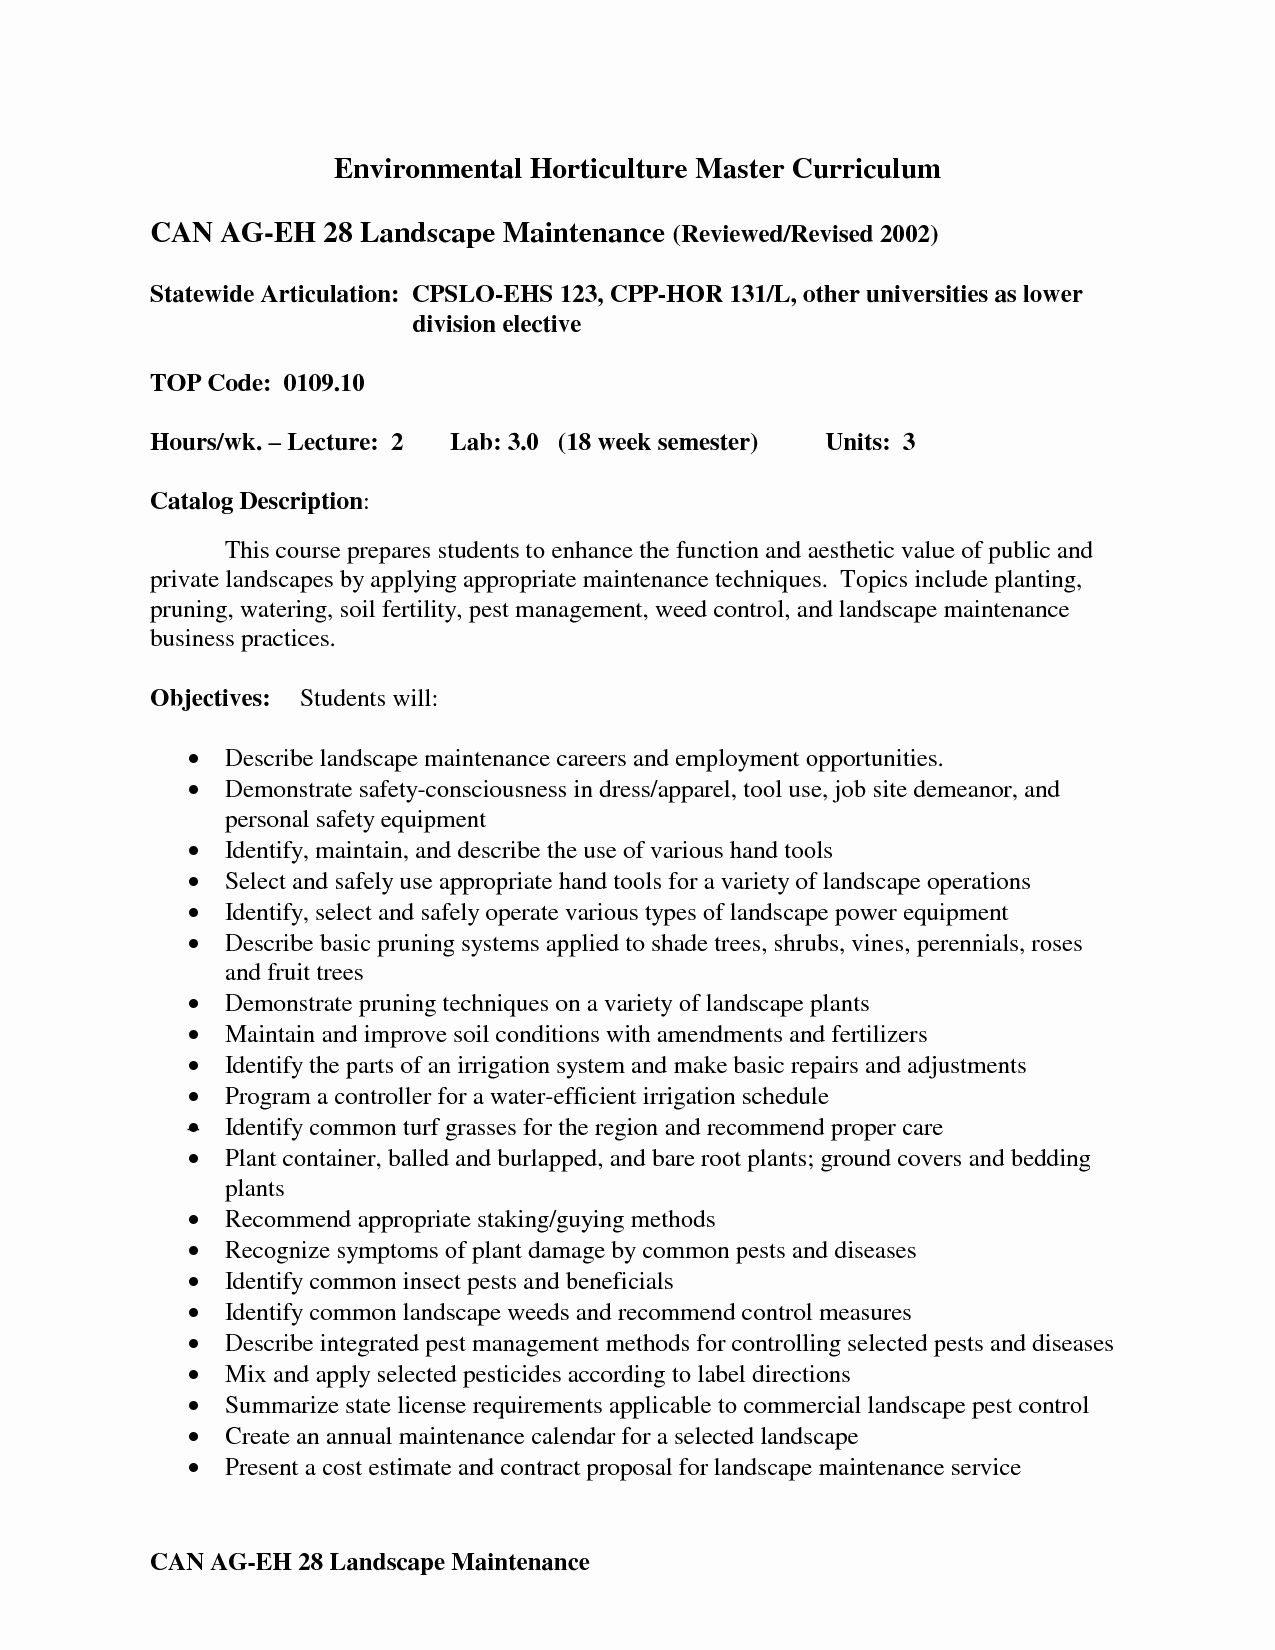 Lawn Service Contract Template Best Of Landscape Bid Templates